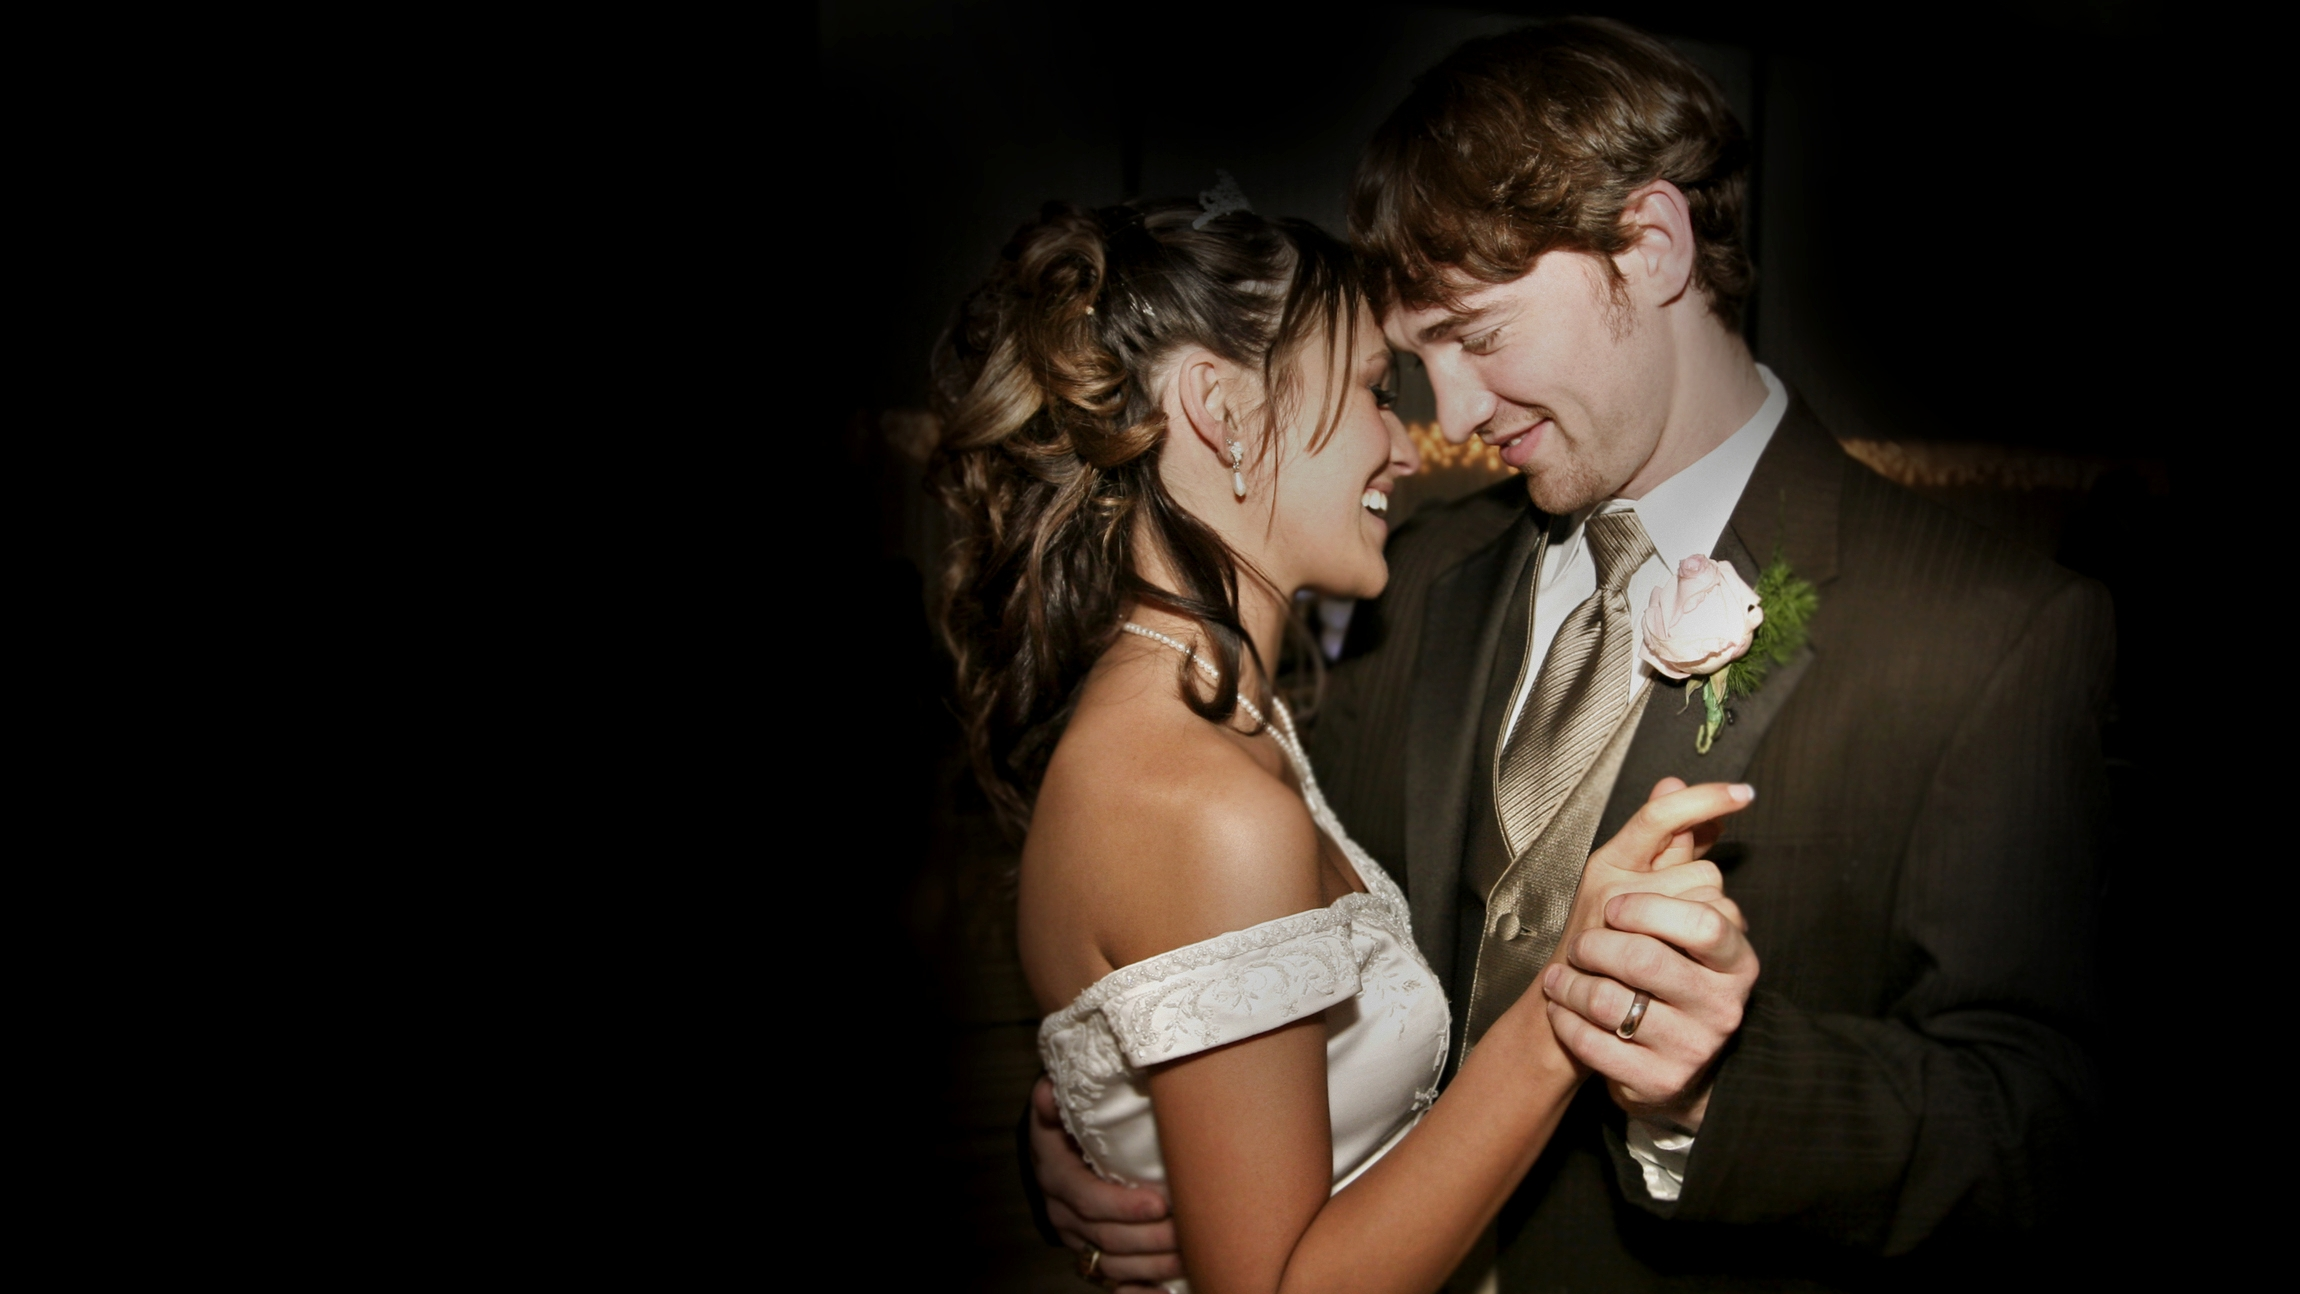 WEDDINGS - Are you engaged and planning your wedding? We offer high-end entertainment services that provide coverage for your ceremony and reception.